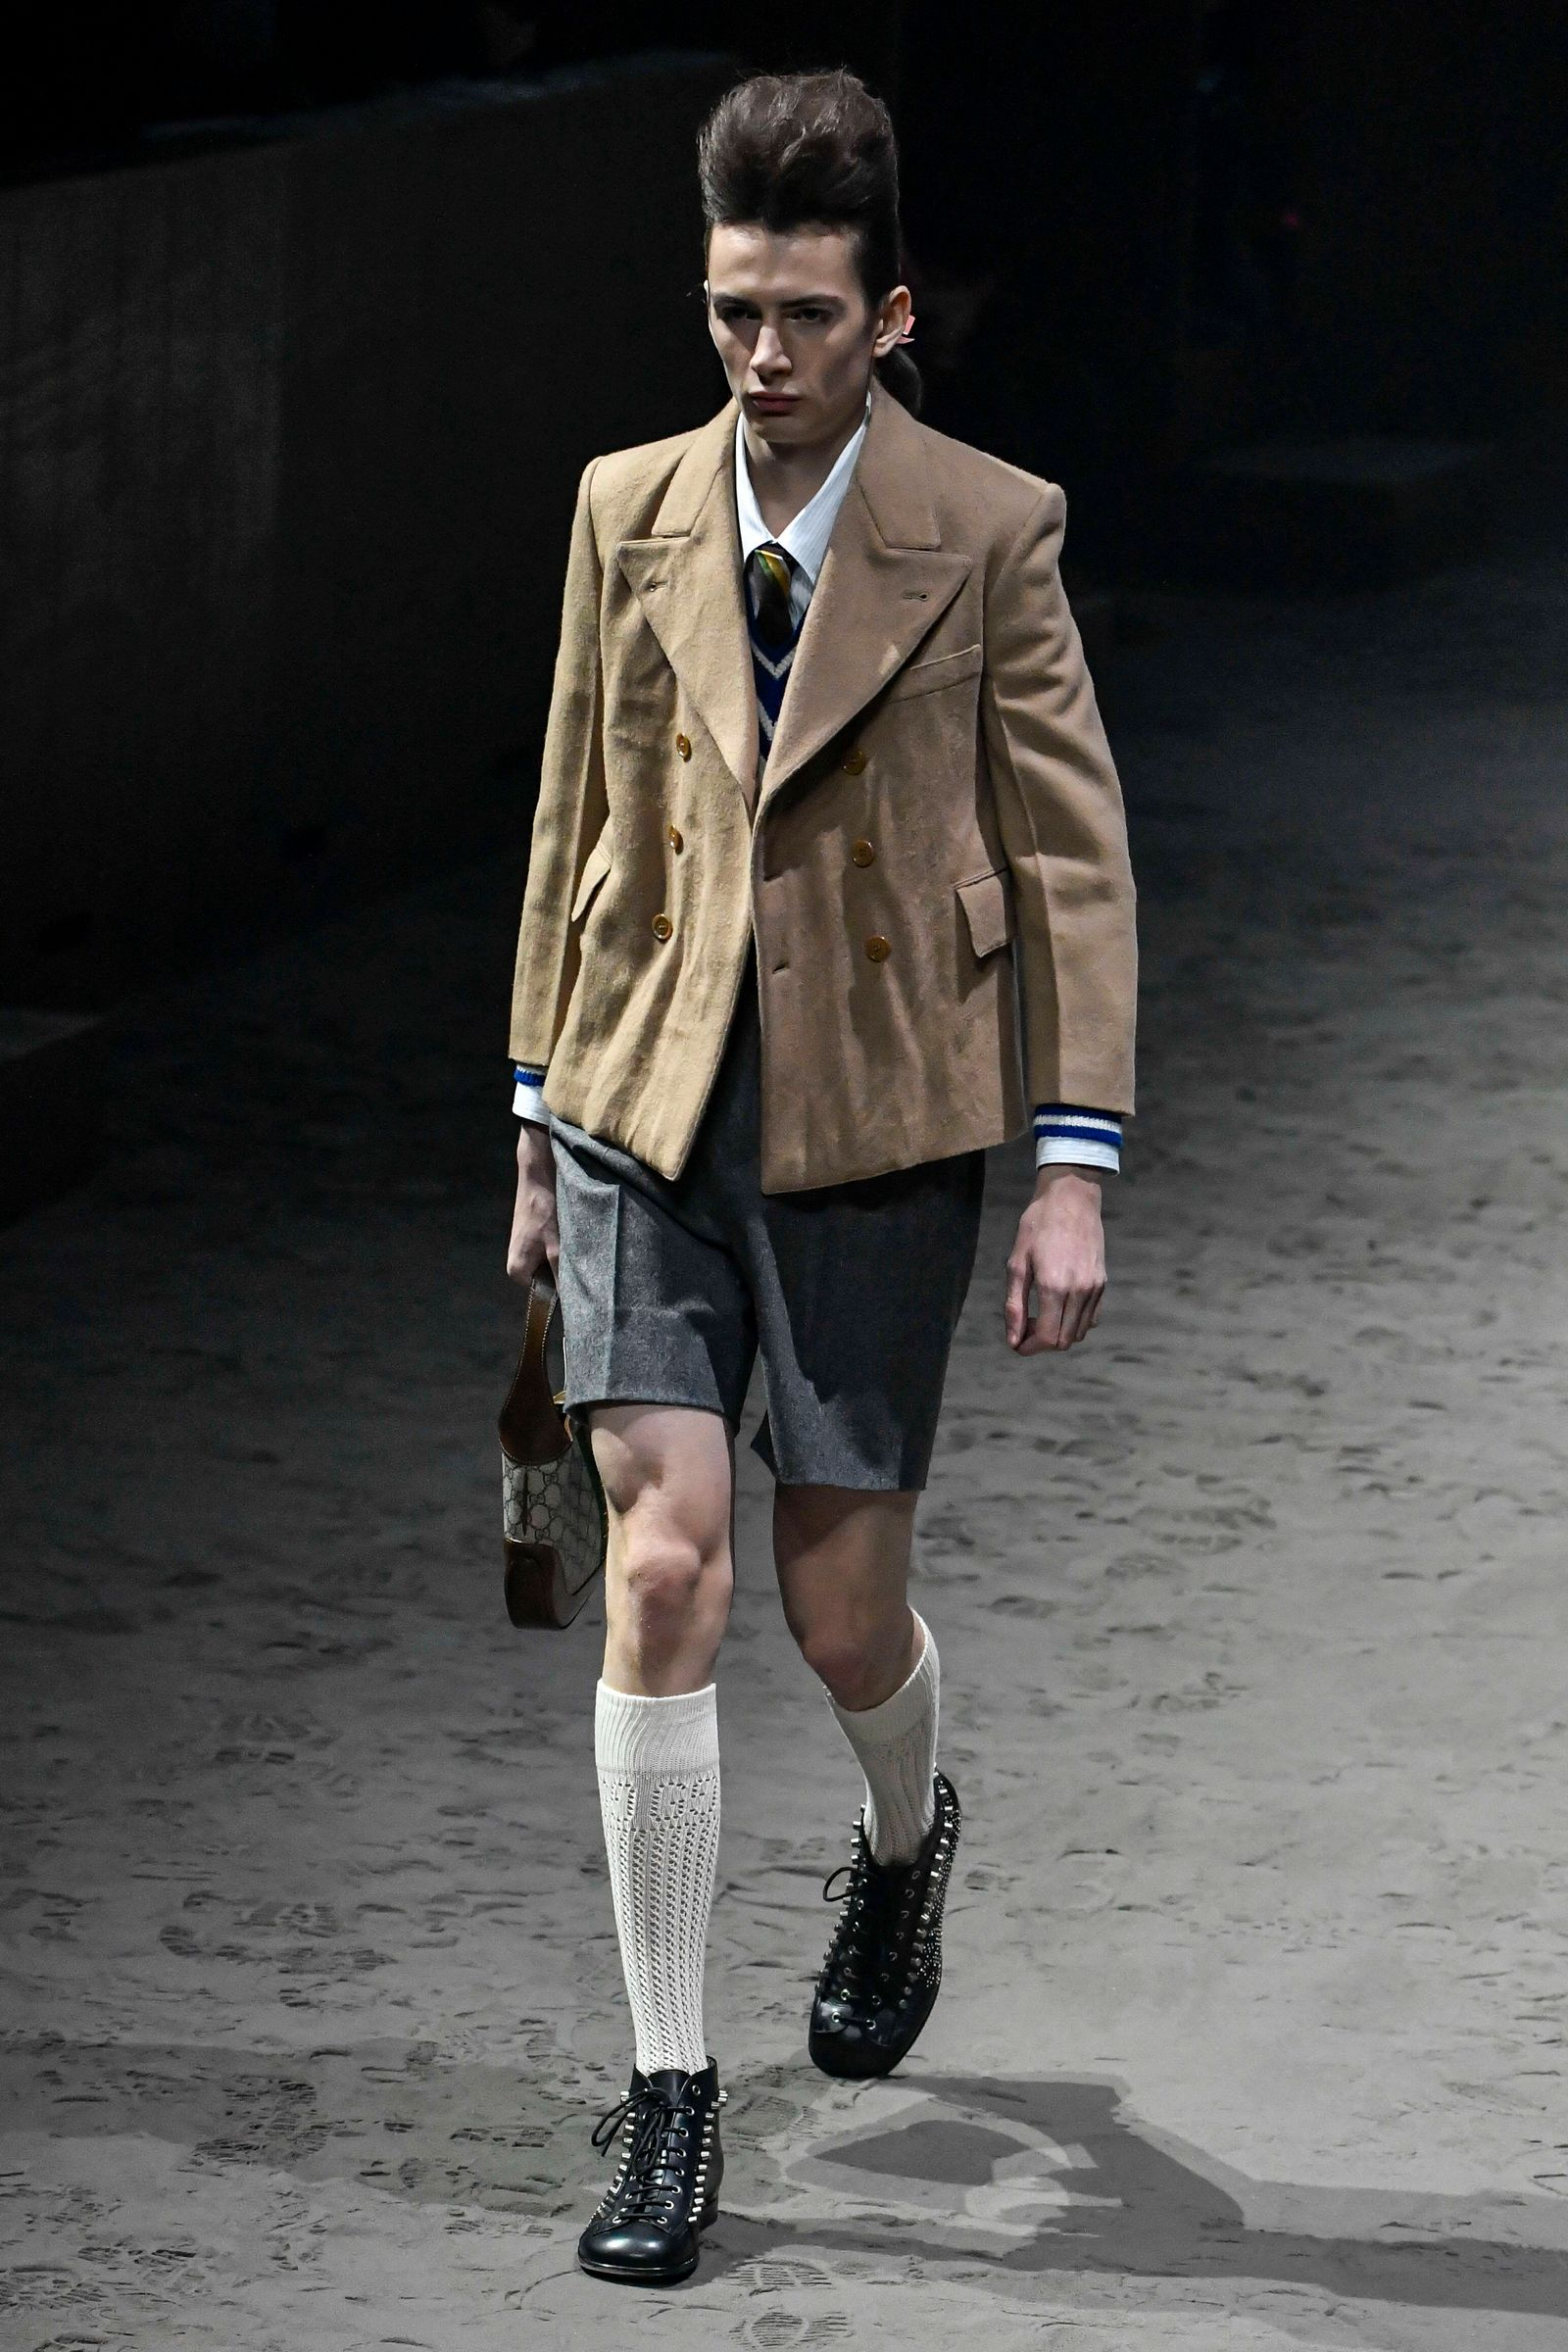 Milan Fashion Week, Man Fall Winter 2020/2021. Milan, Men s Fashion Fall Winter 2020 / 21. Gucci fashion show. Pictured: